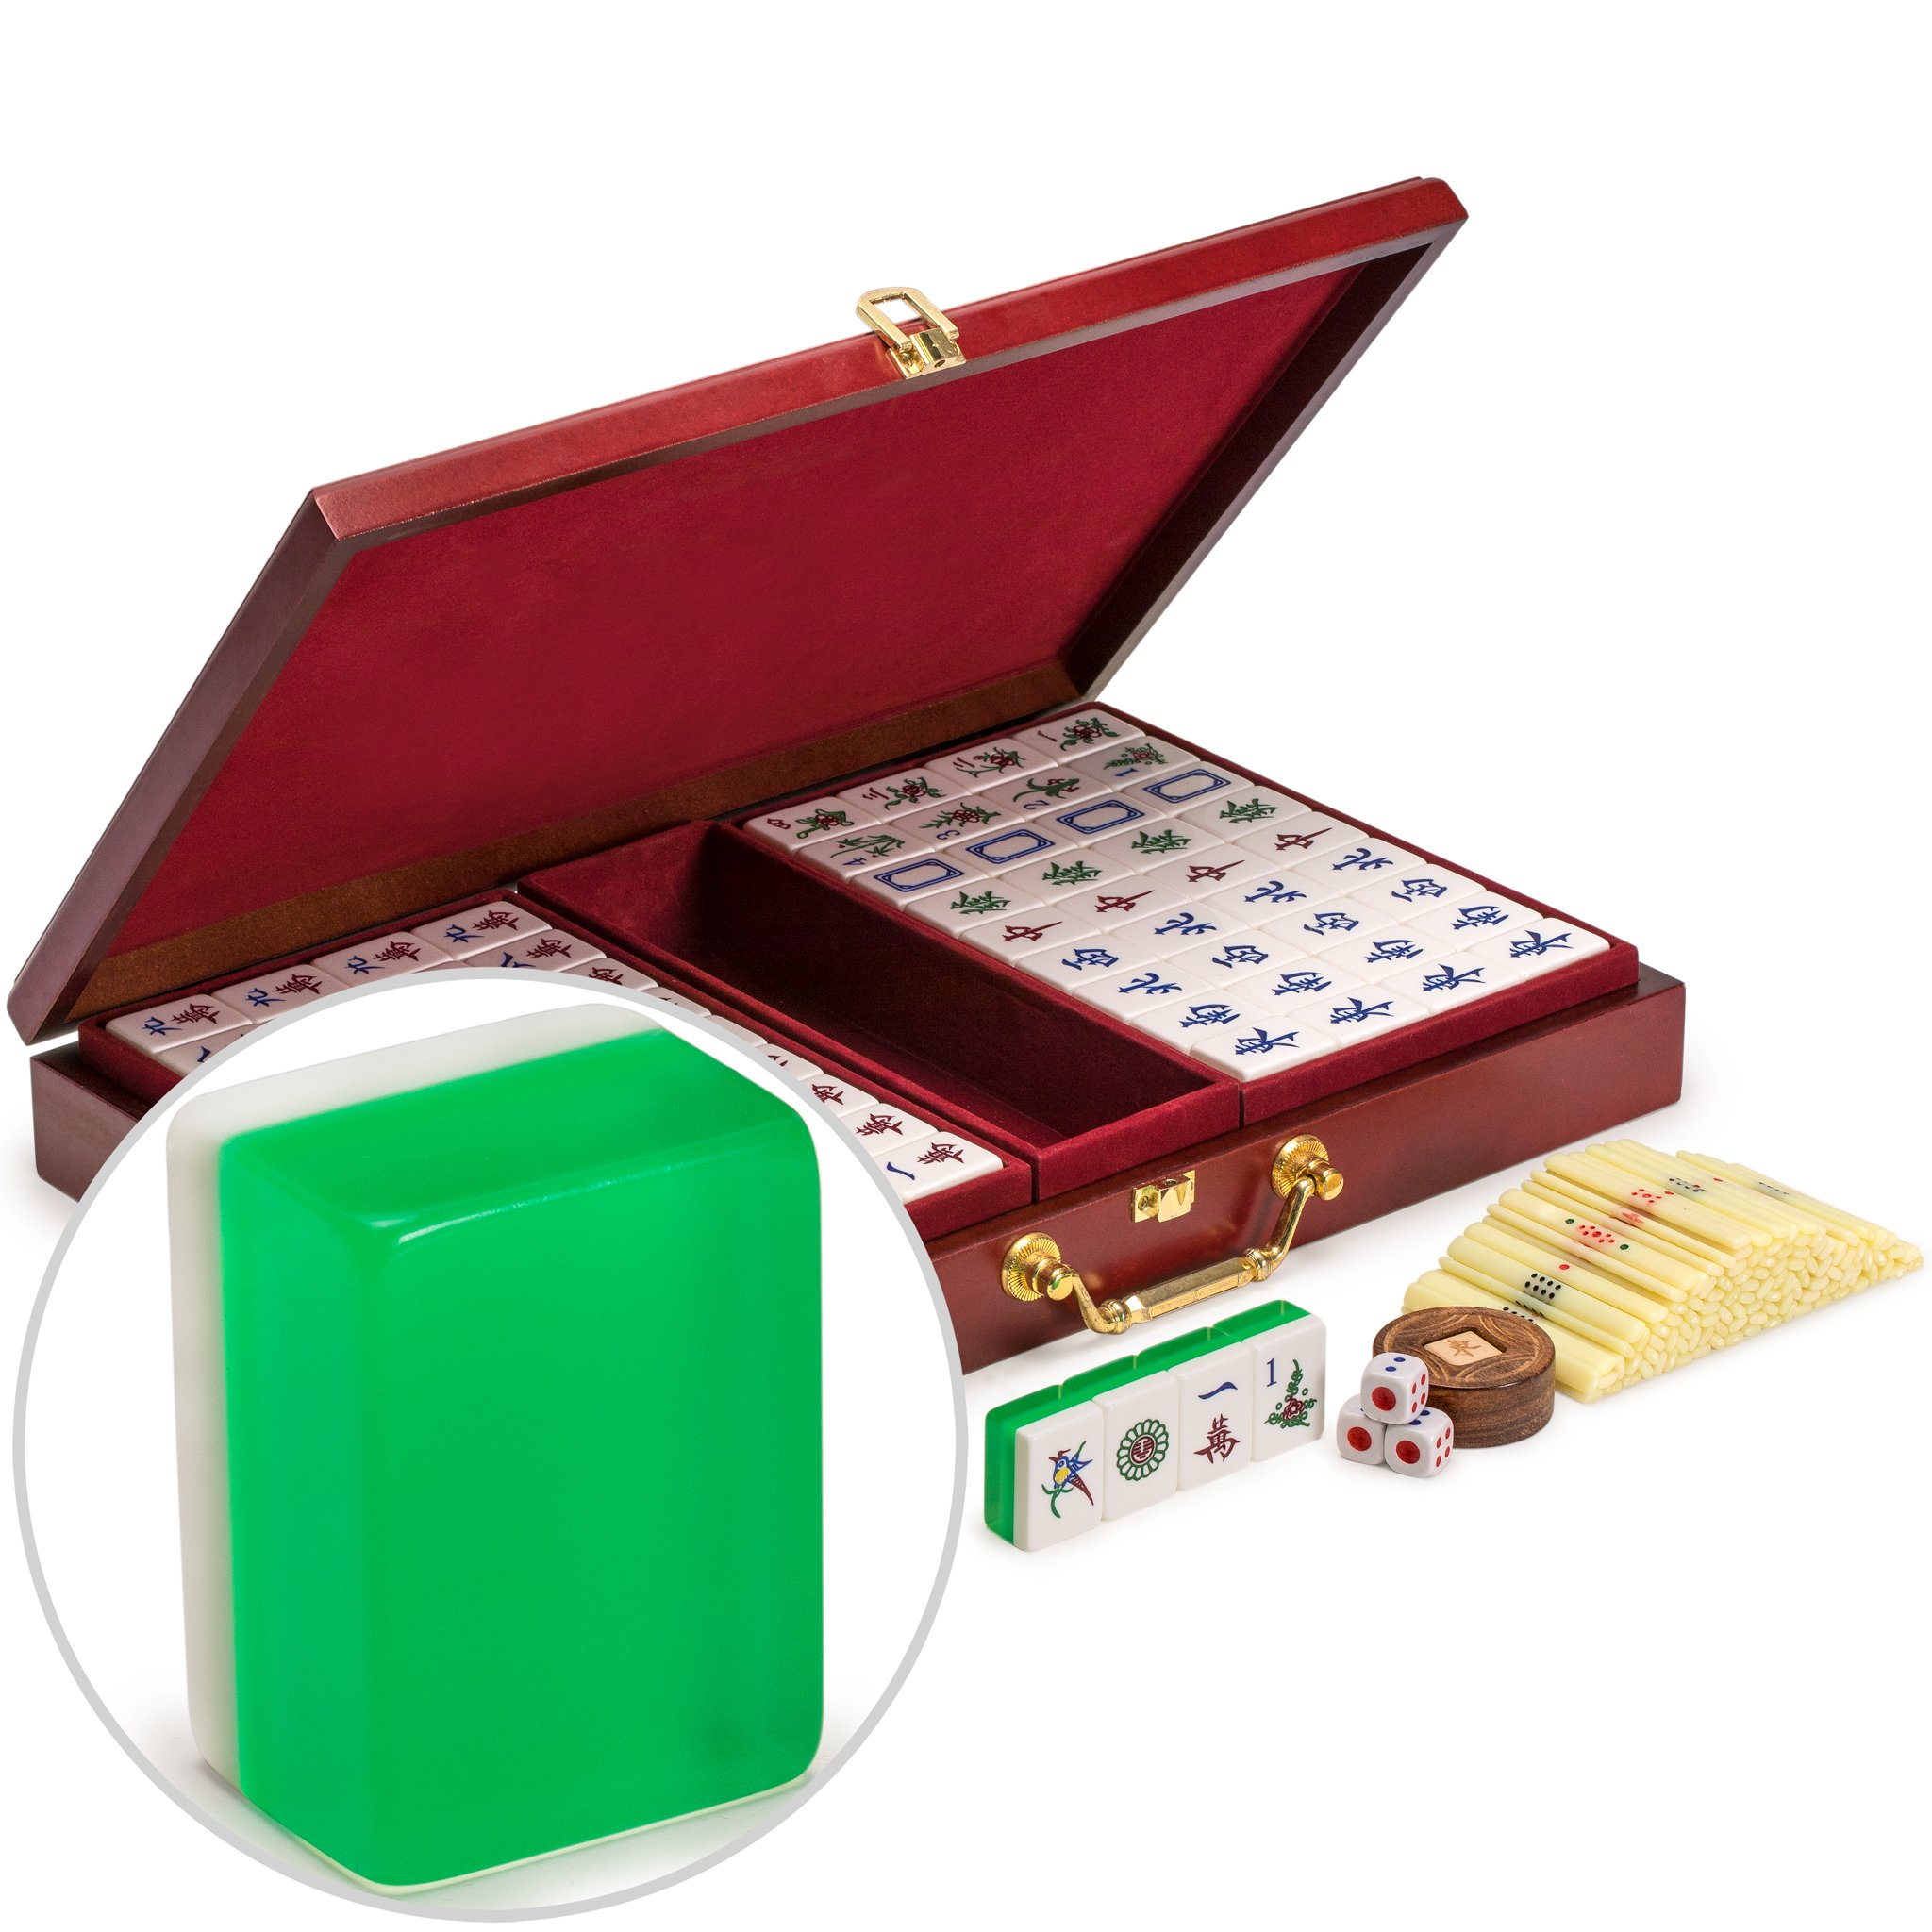 Yellow Mountain Imports Chinese Mahjong Set, Emerald - Medium Size Tiles: 1.3 x 1 x 0.6 inches (34mm x 25mm x 16mm) - for Chinese Style Gameplay Only